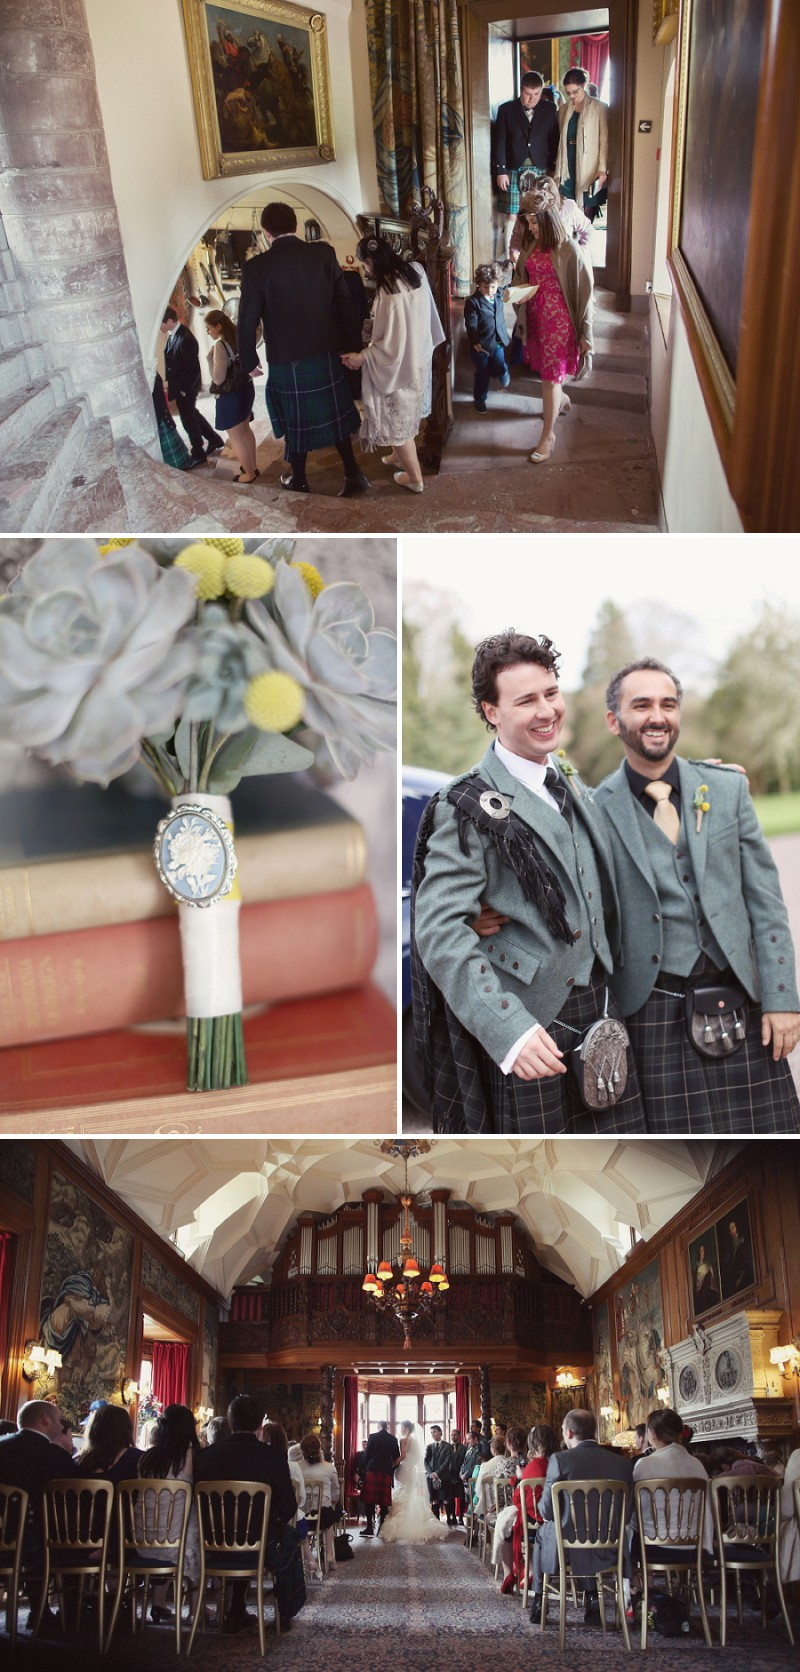 A Super Glamorous Spring Scottish Wedding At Fyvie Castle With An Ian Stewart Ruffled Fishtail Dress and A Yellow Billy Ball Bouquet With Photography By Craig and Eva Sanders._0006